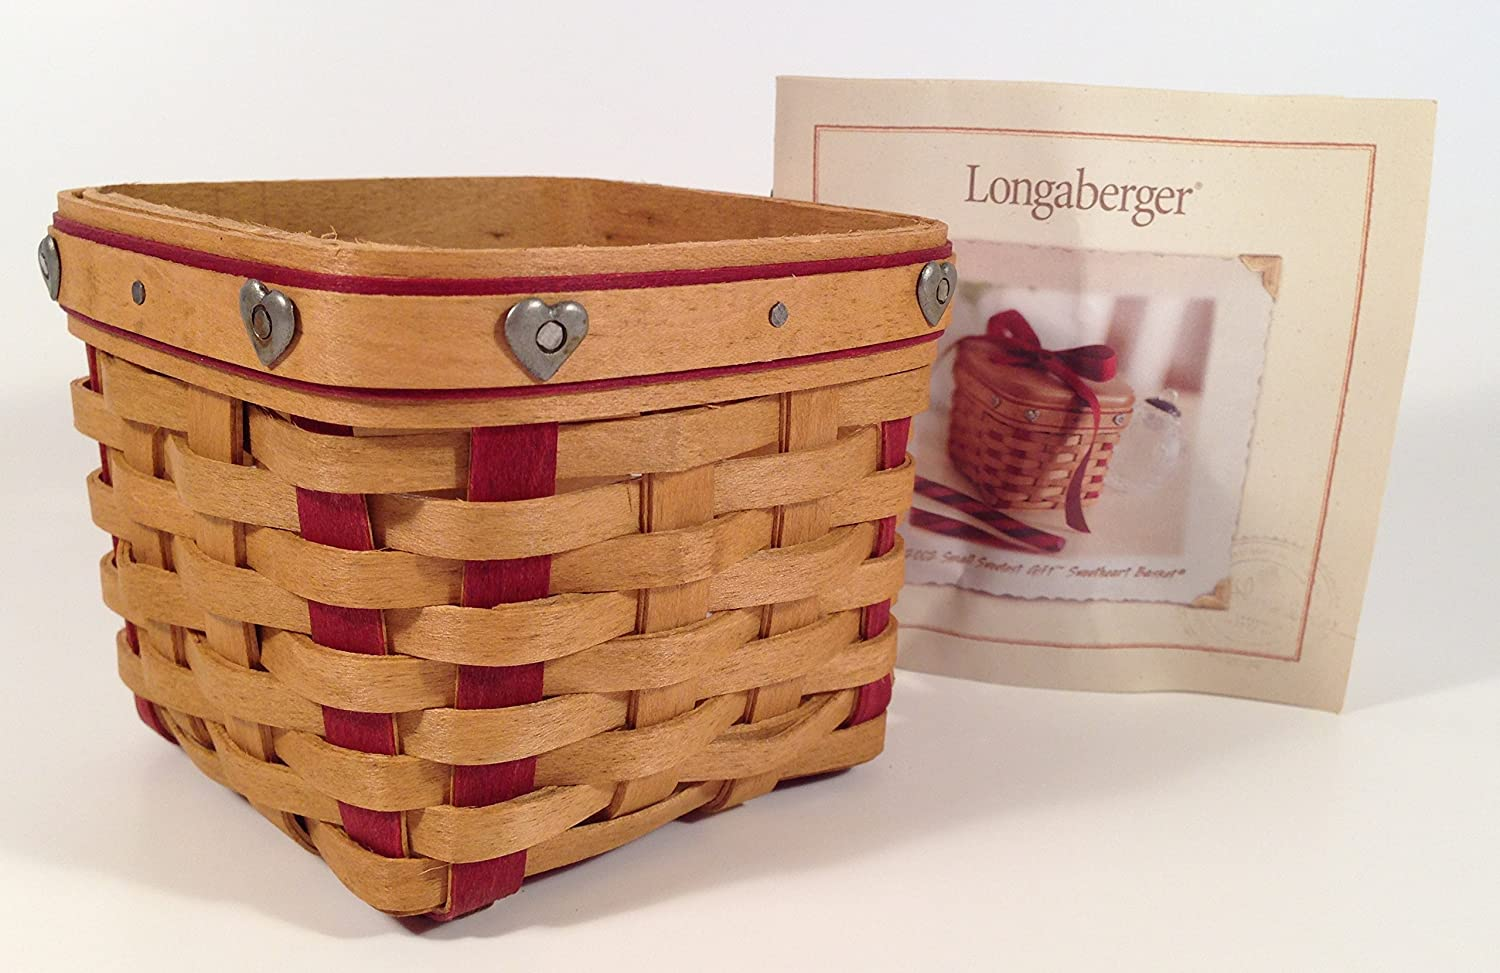 Longaberger office for longaberger office for Longaberger baskets for sale